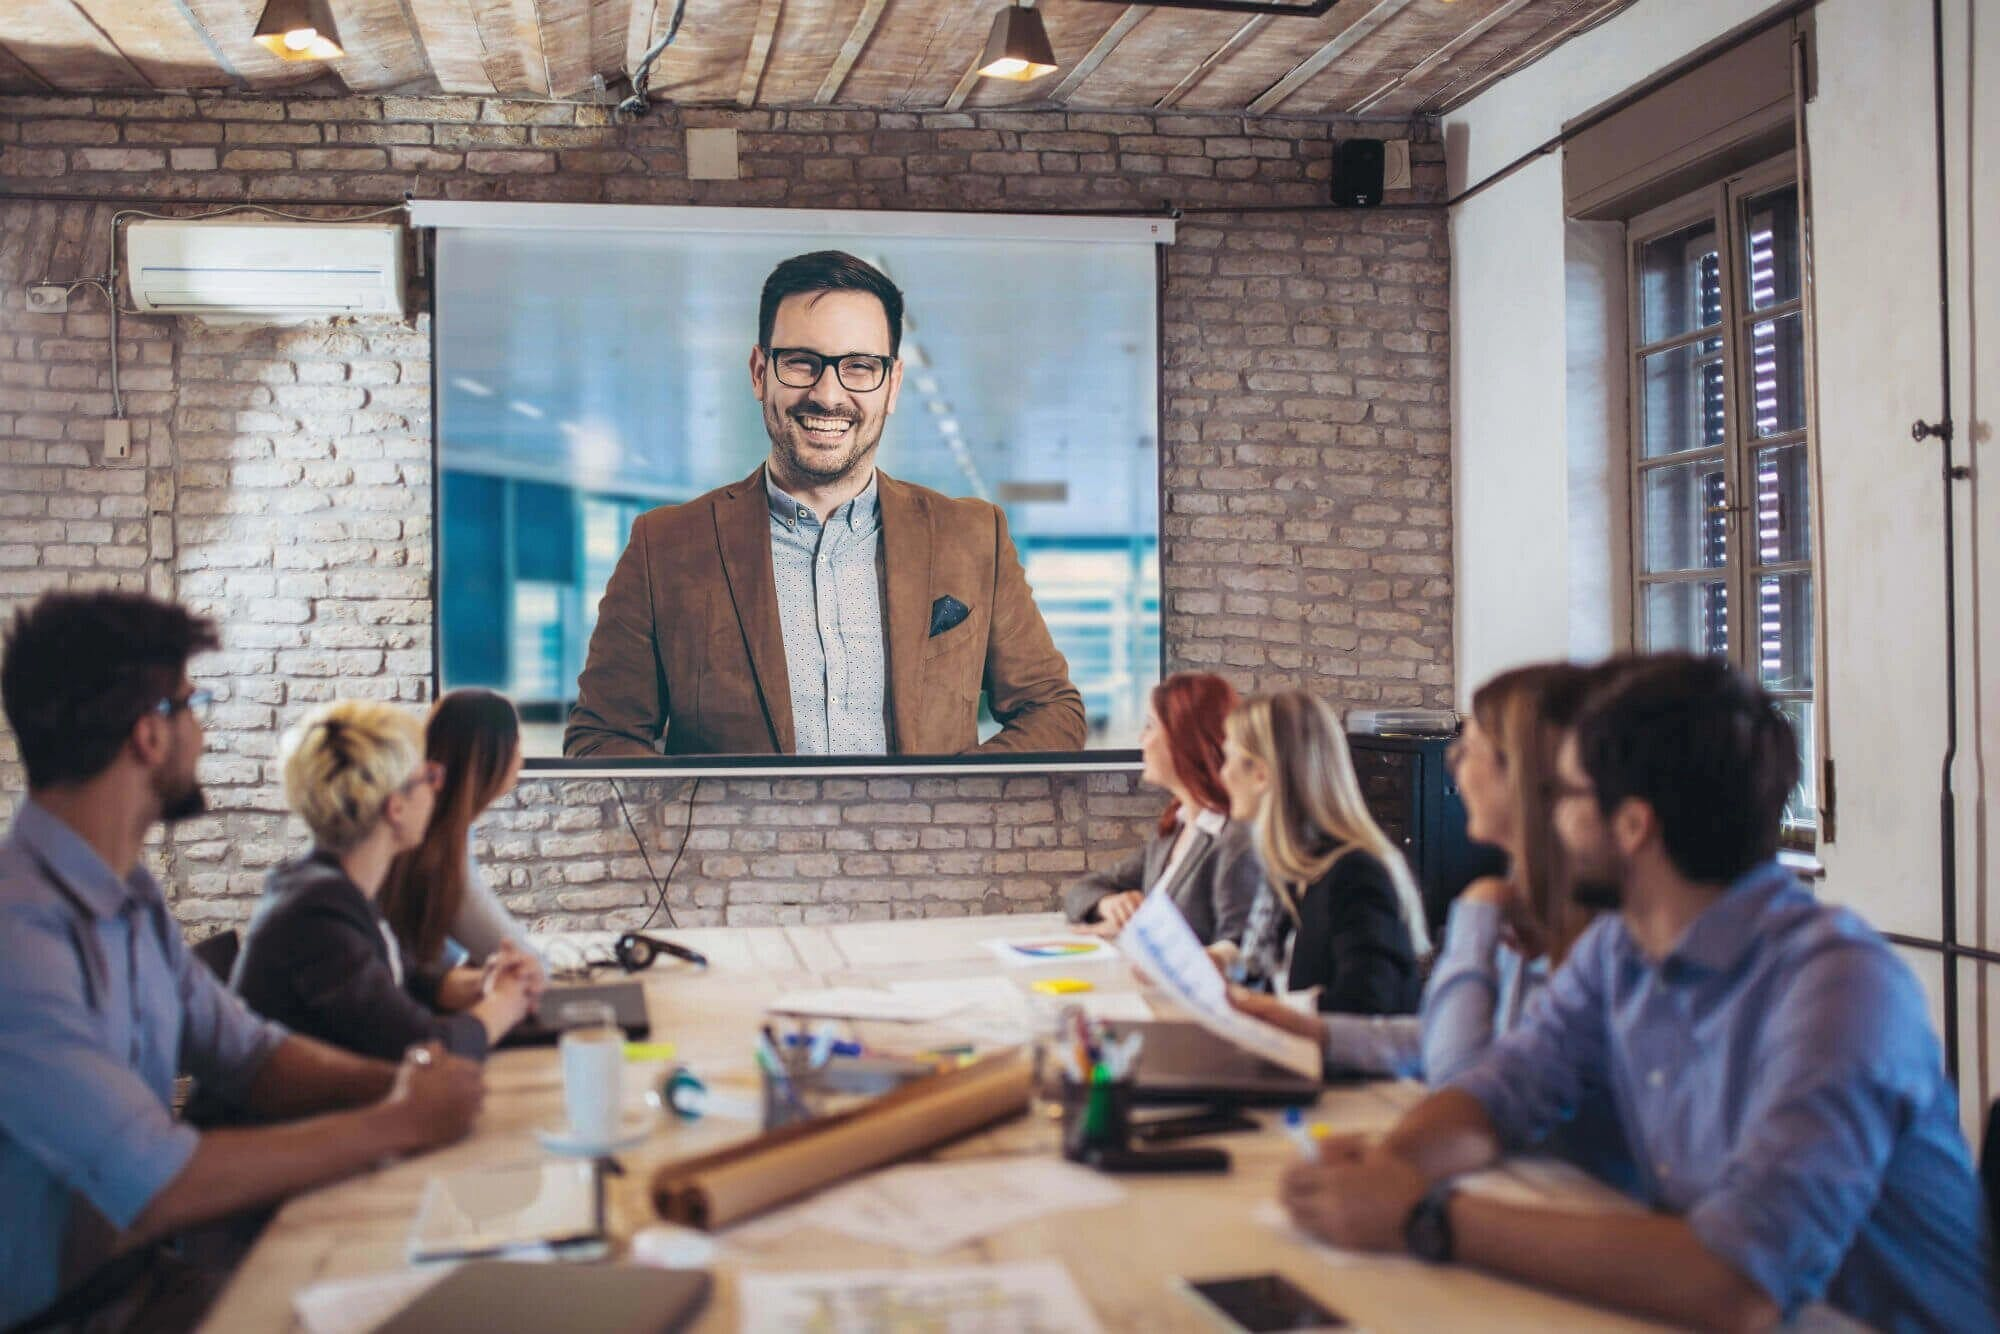 video conference of man with glasses